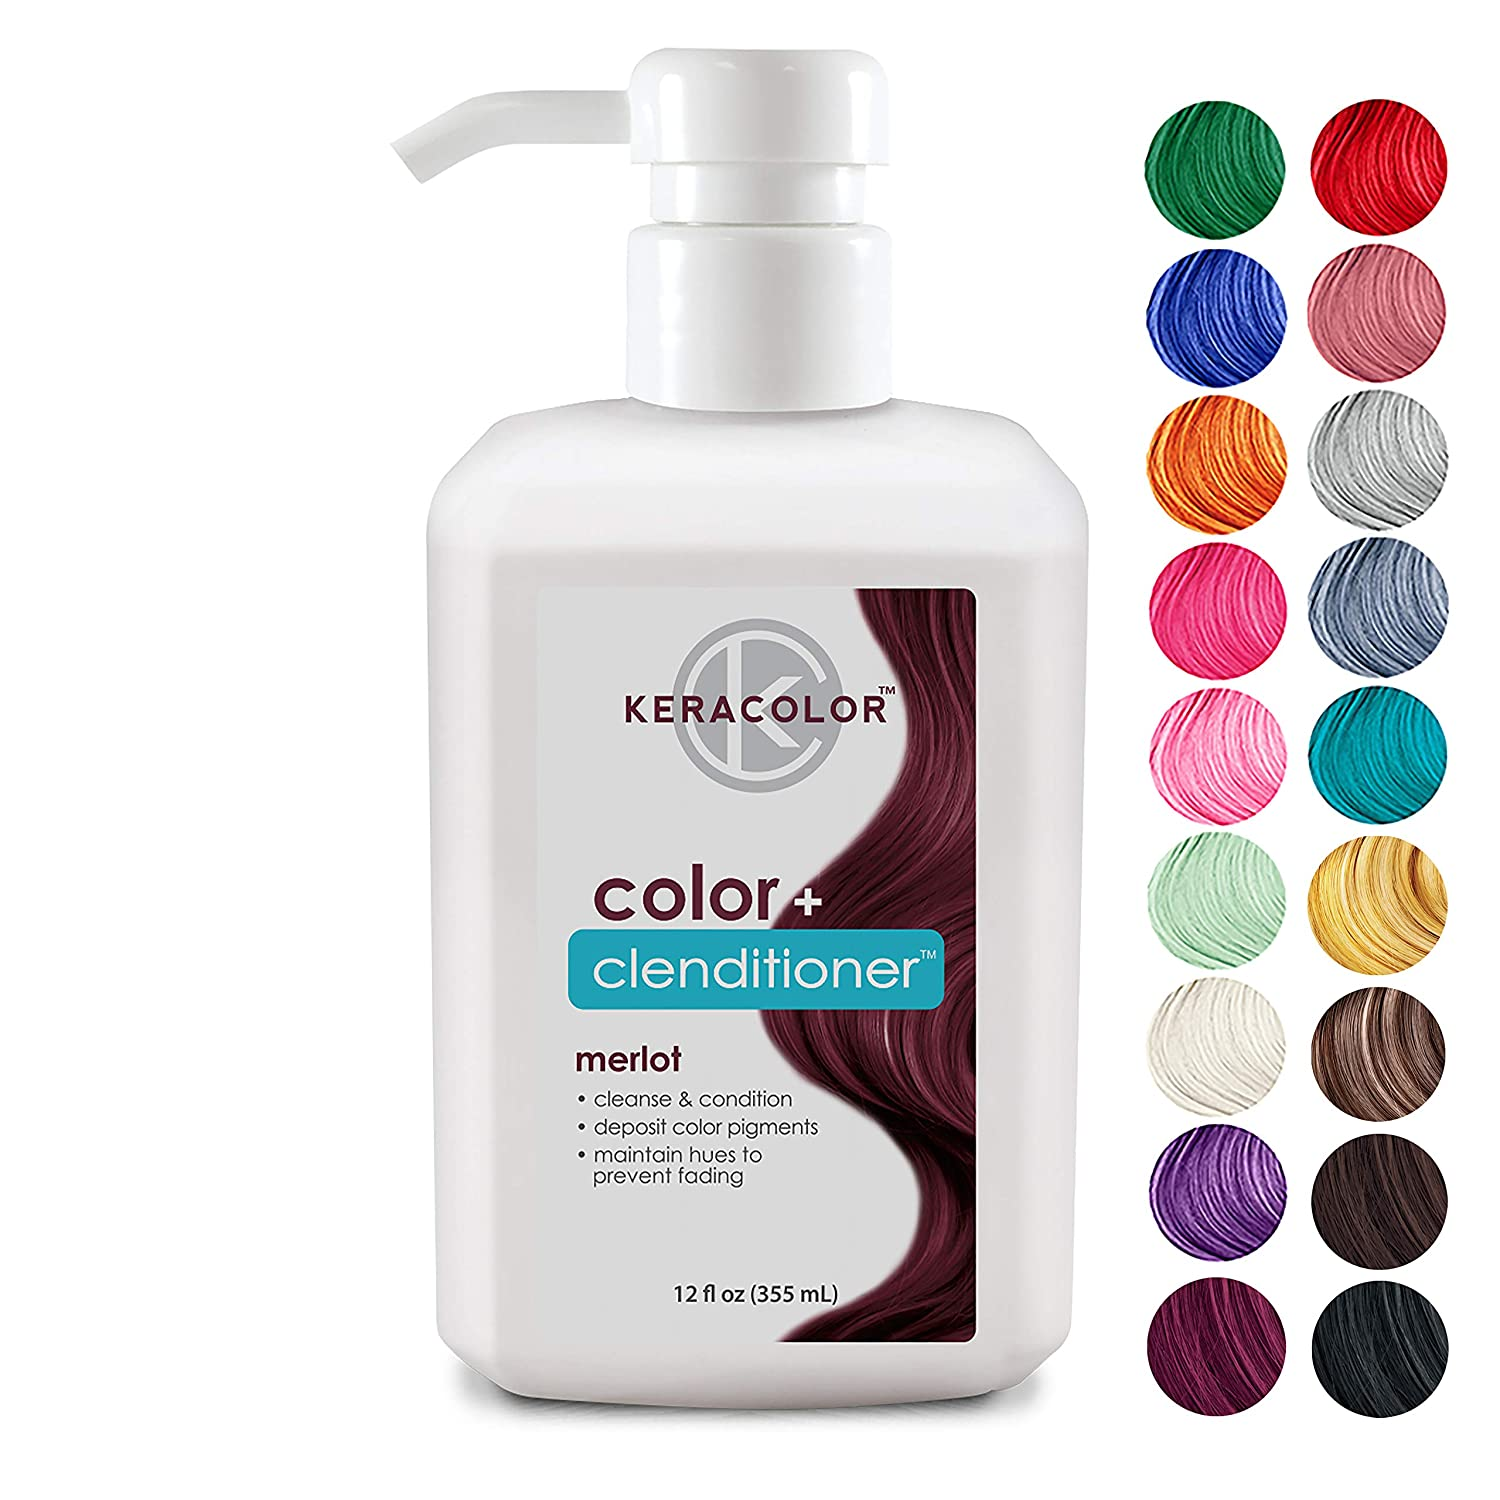 Keracolor Clenditioner - Best professional hair color brand